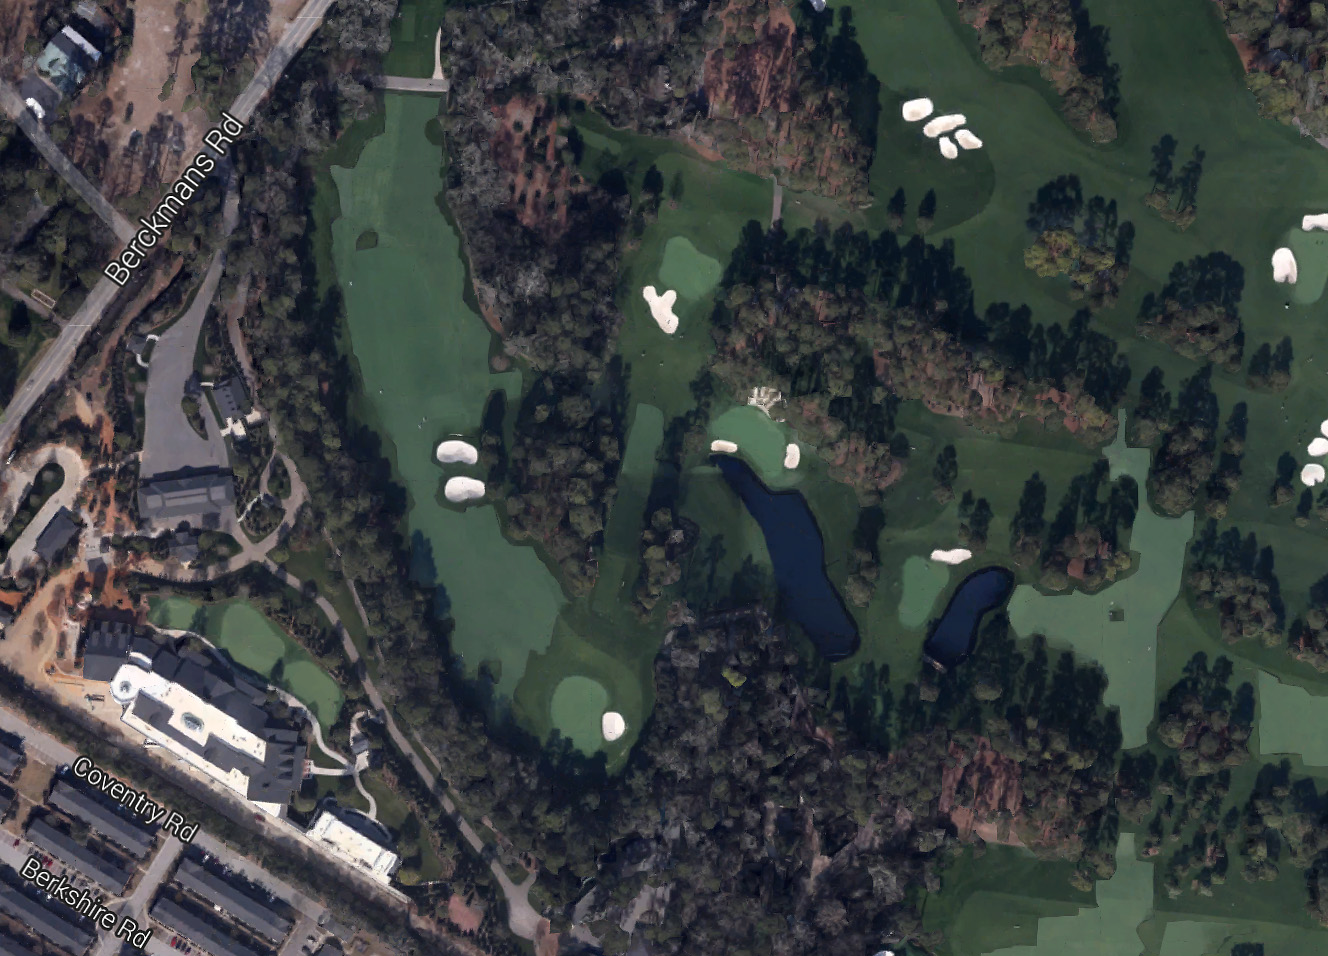 Berckmans Place [lower left of photo], Augusta National's new luxury VIP area, is hidden by trees behind the right side of the 5th fairway.